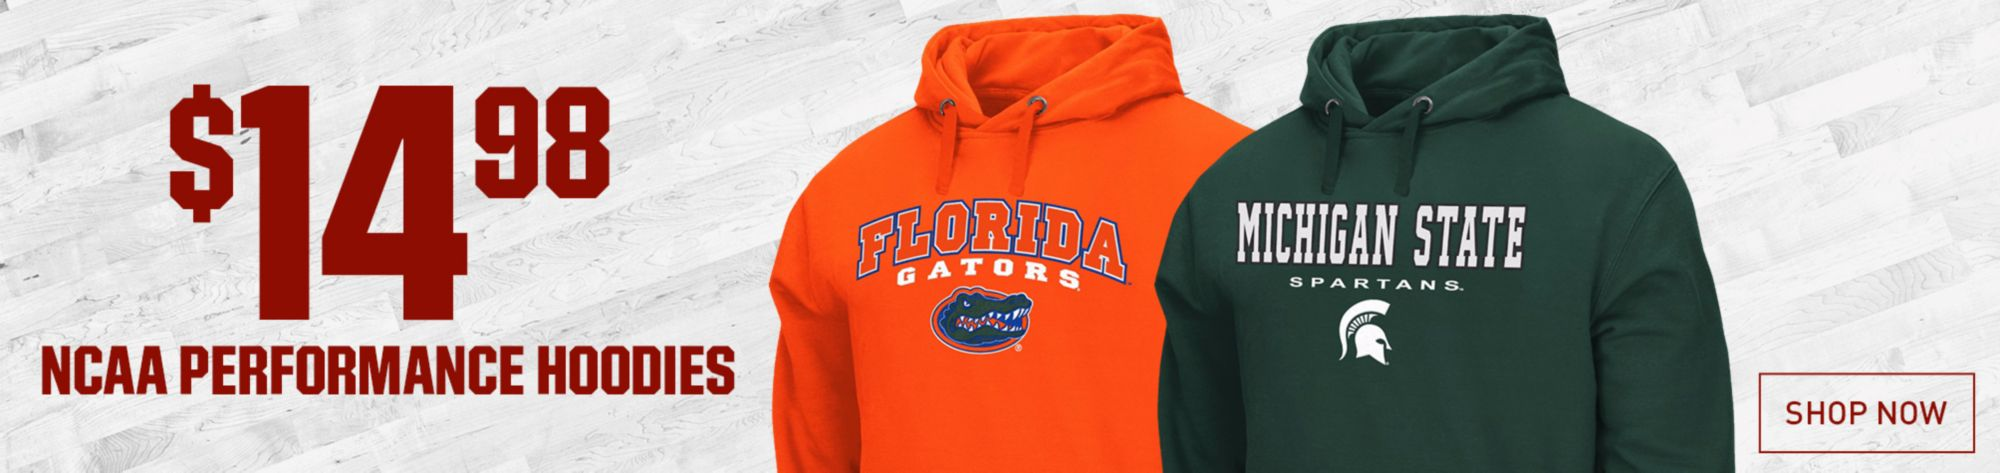 NCAA Hoodies for $14.98